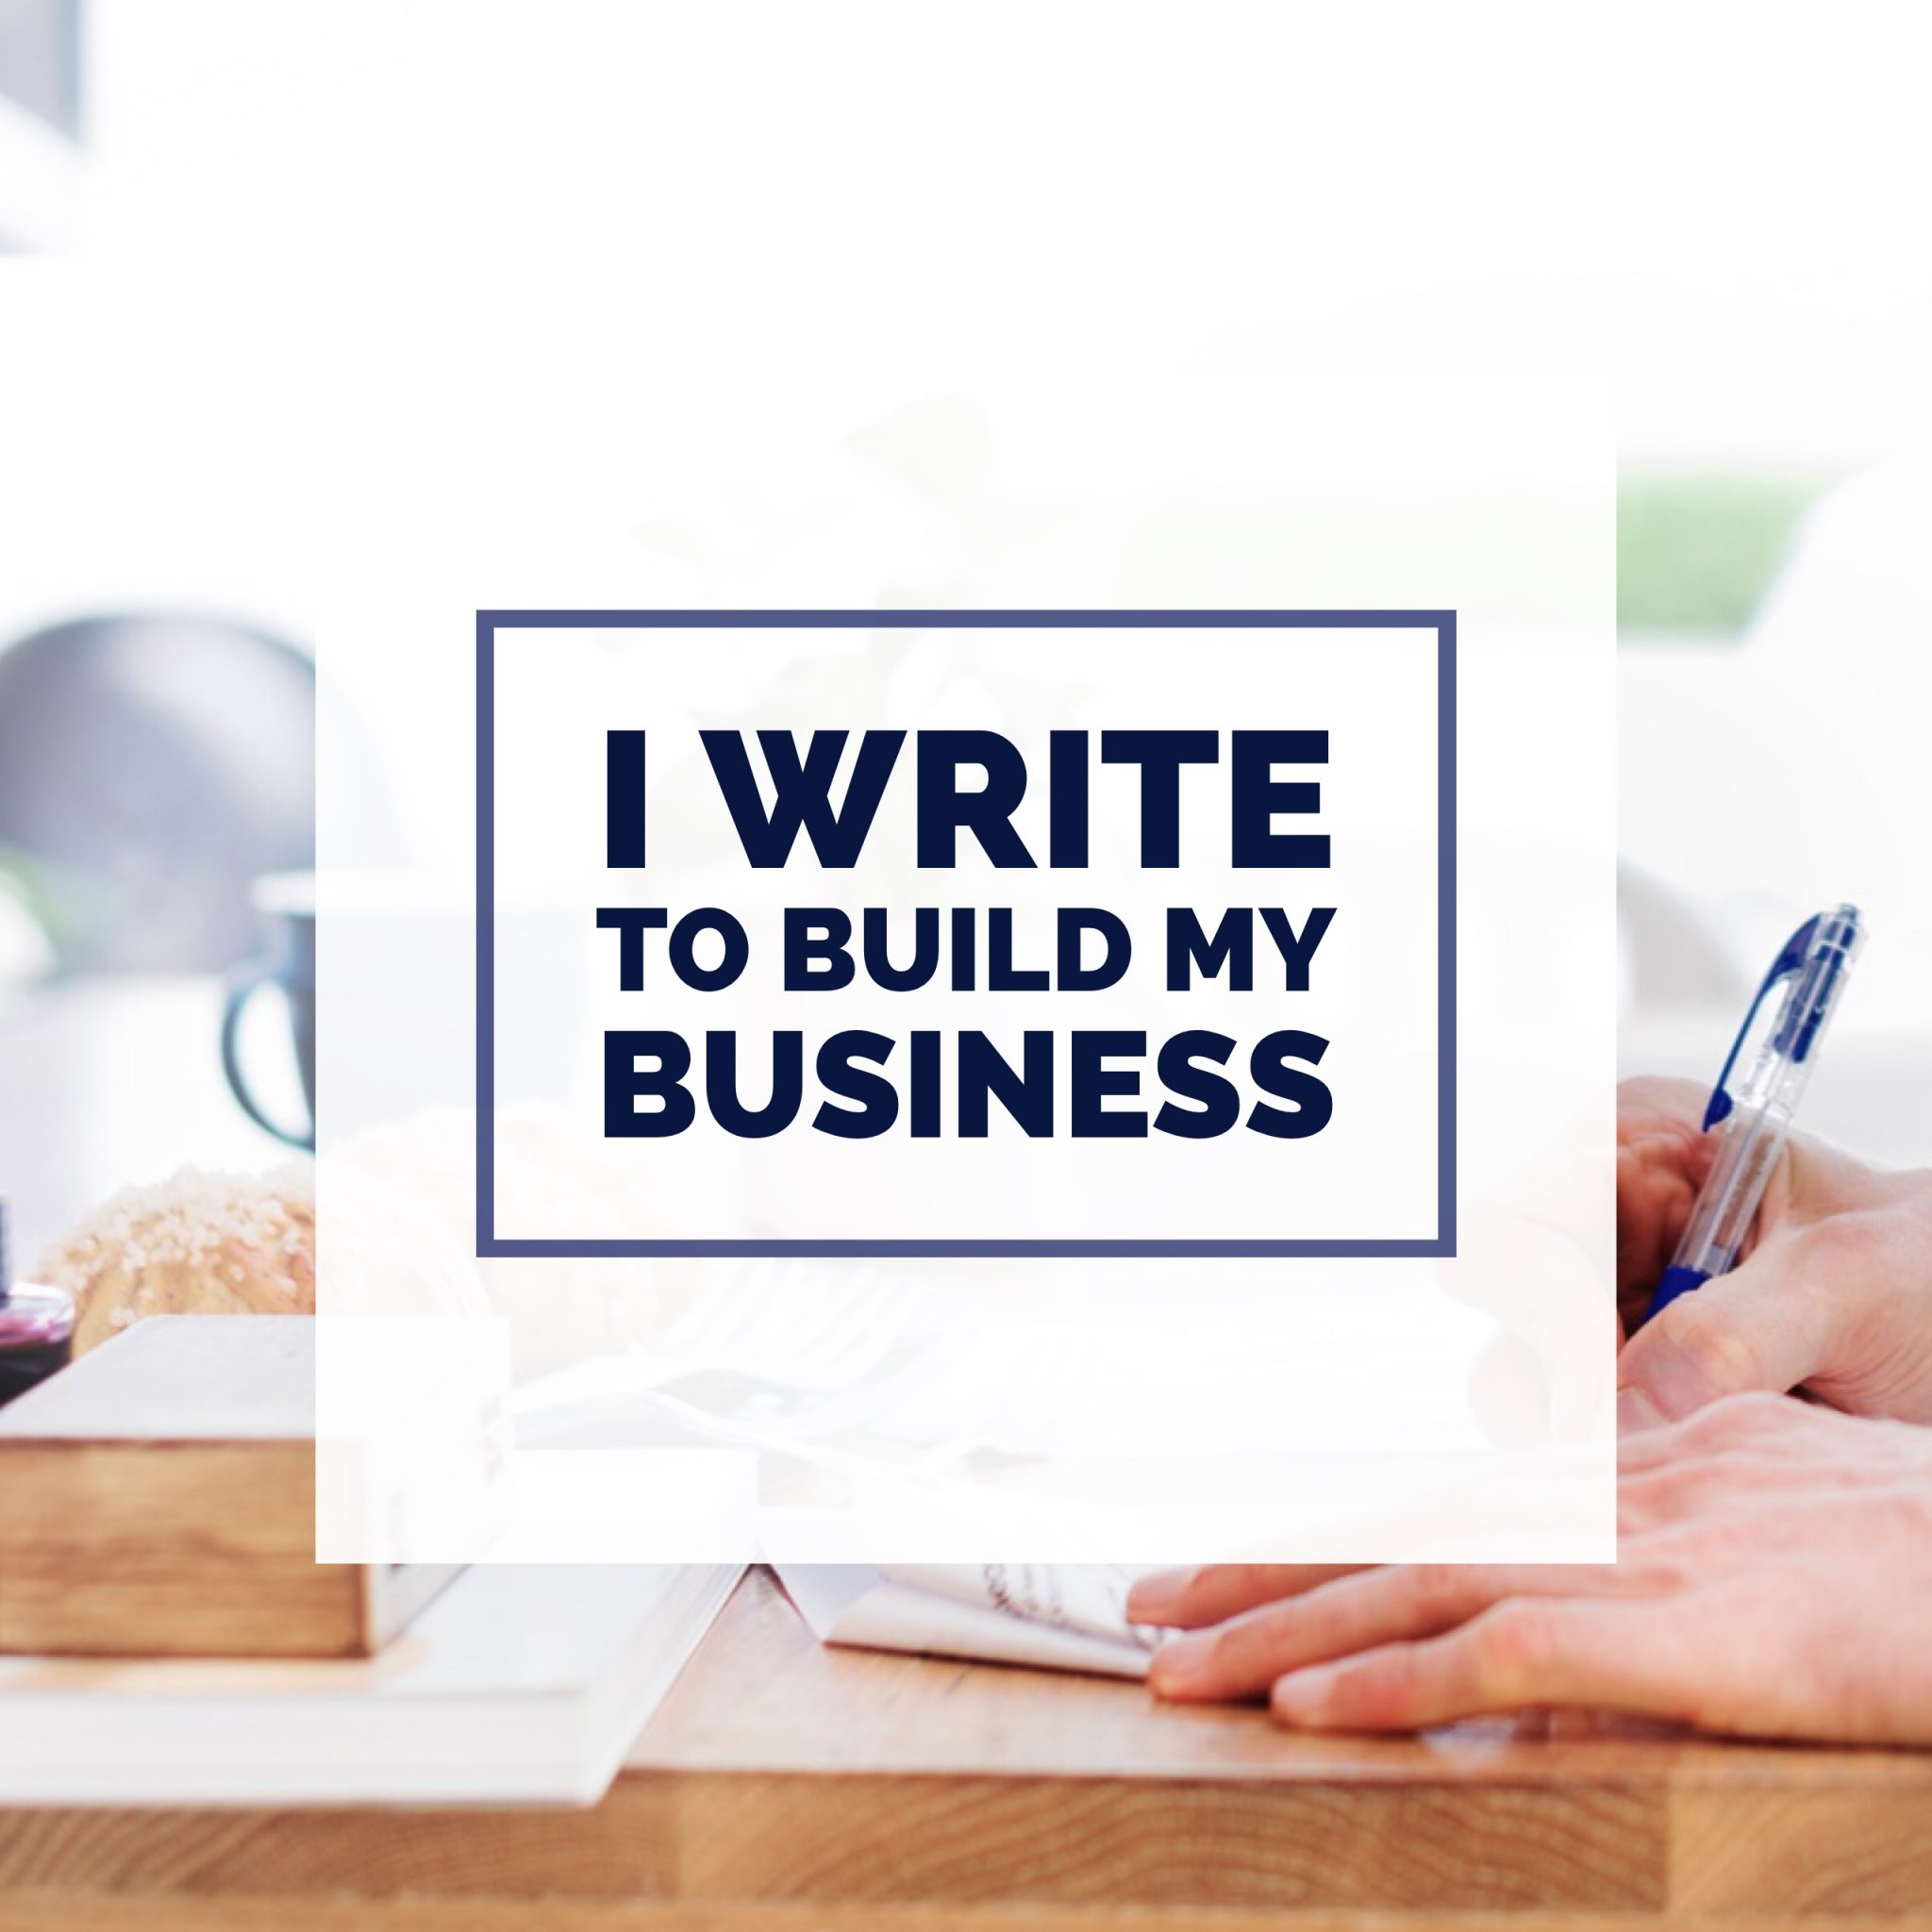 Business writers